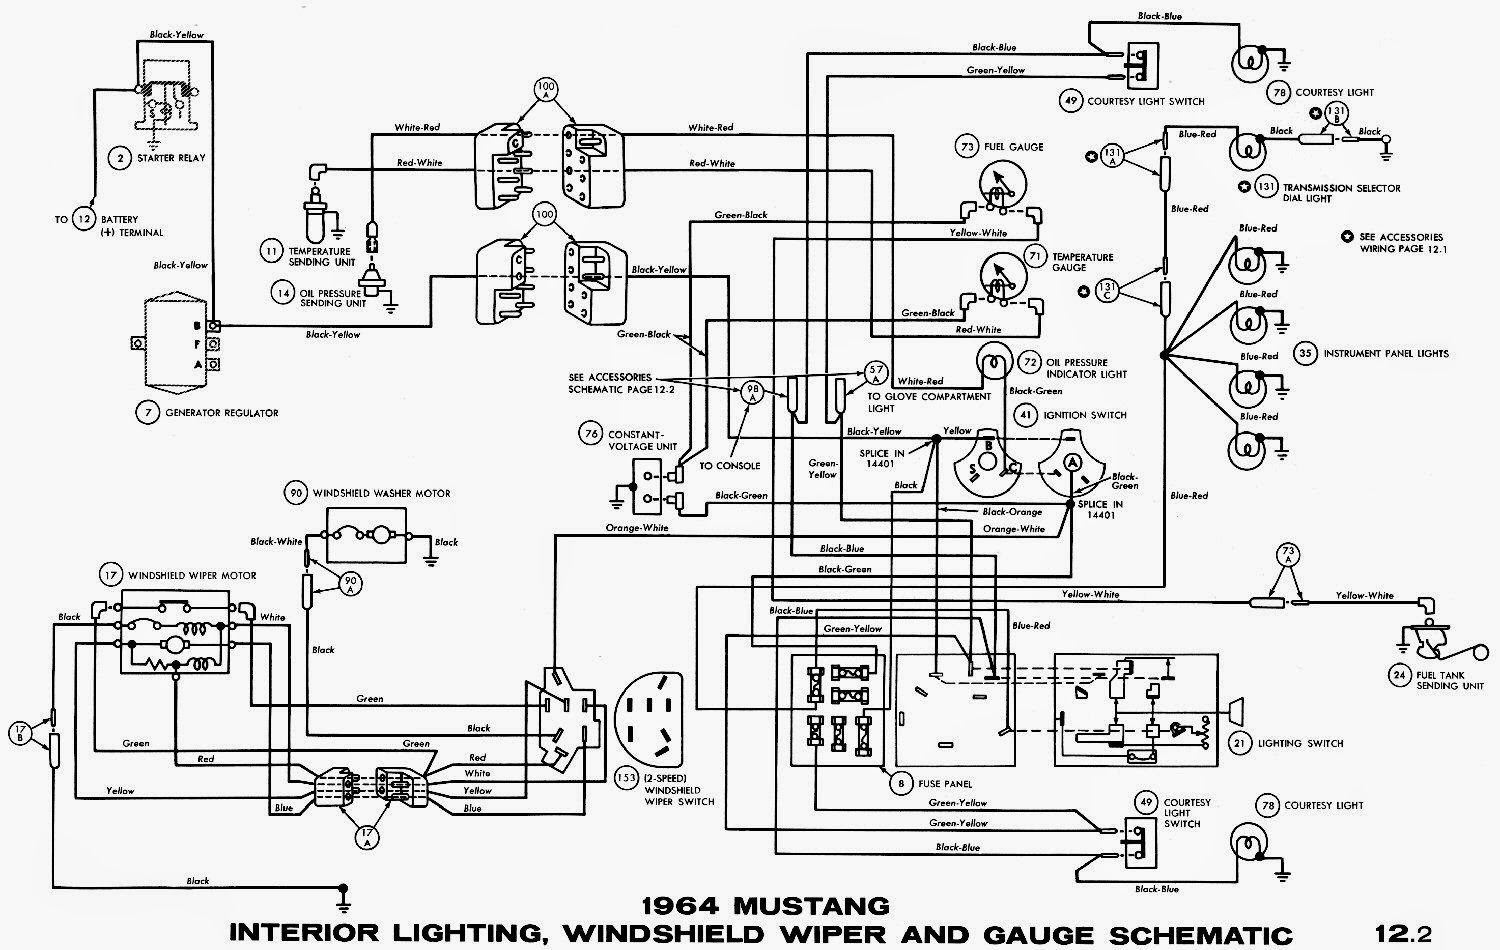 1964 12 Mustang Wiring Diagram Harness Schematics De Walt Air Compressor D55162 Diagrams Schematic Starter 1967 Coil